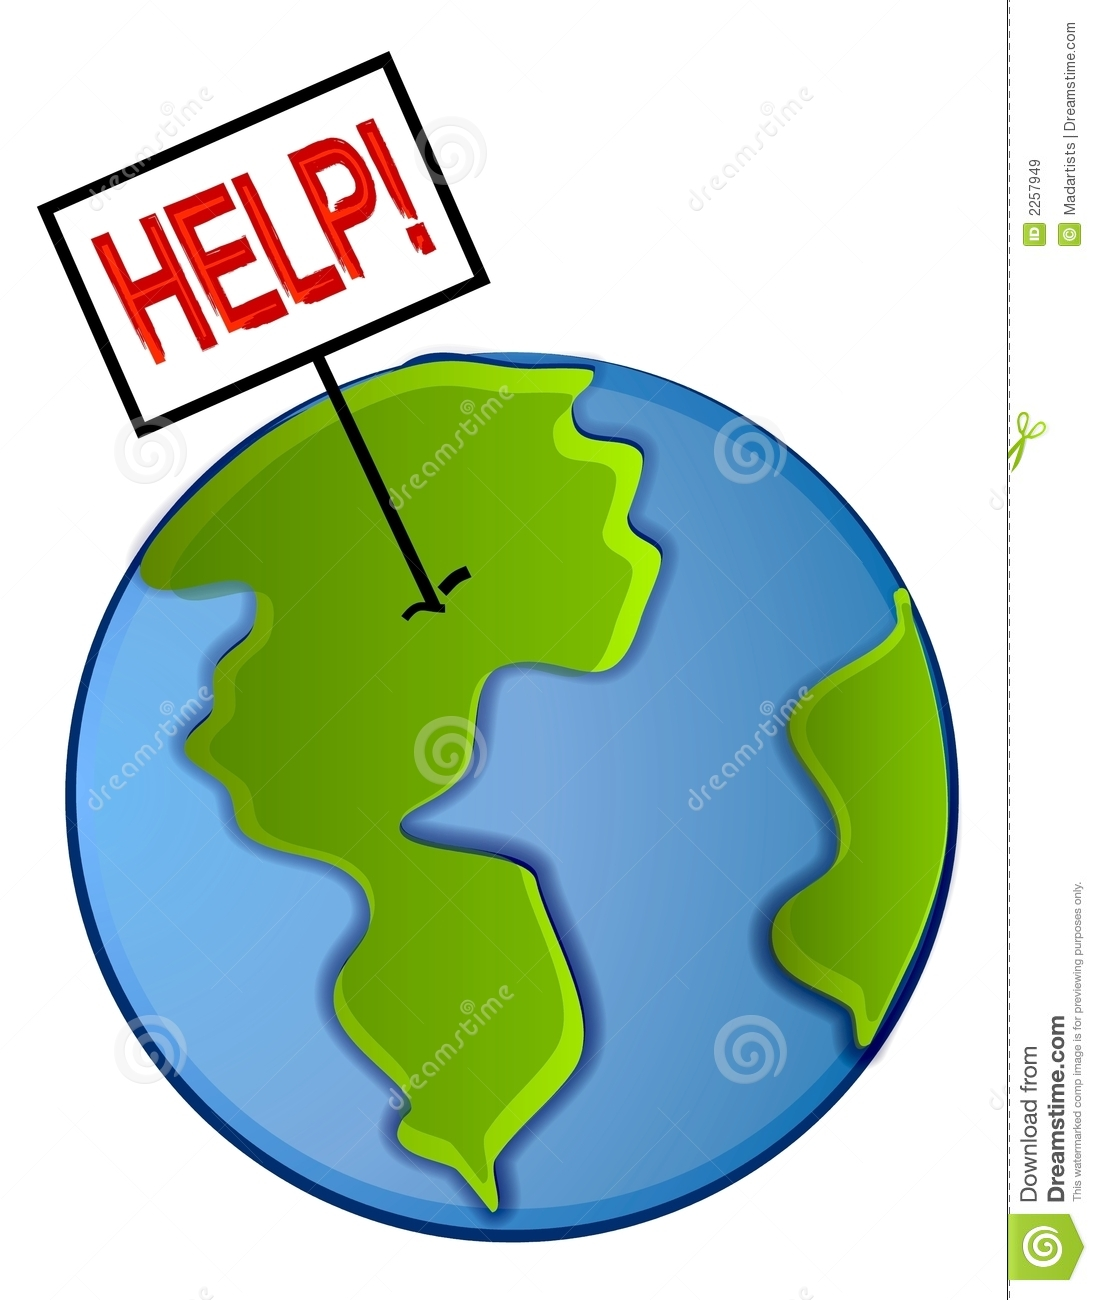 Save the world free clipart graphic royalty free library Earth Save The Planet Clip Art | Clipart Panda - Free ... graphic royalty free library